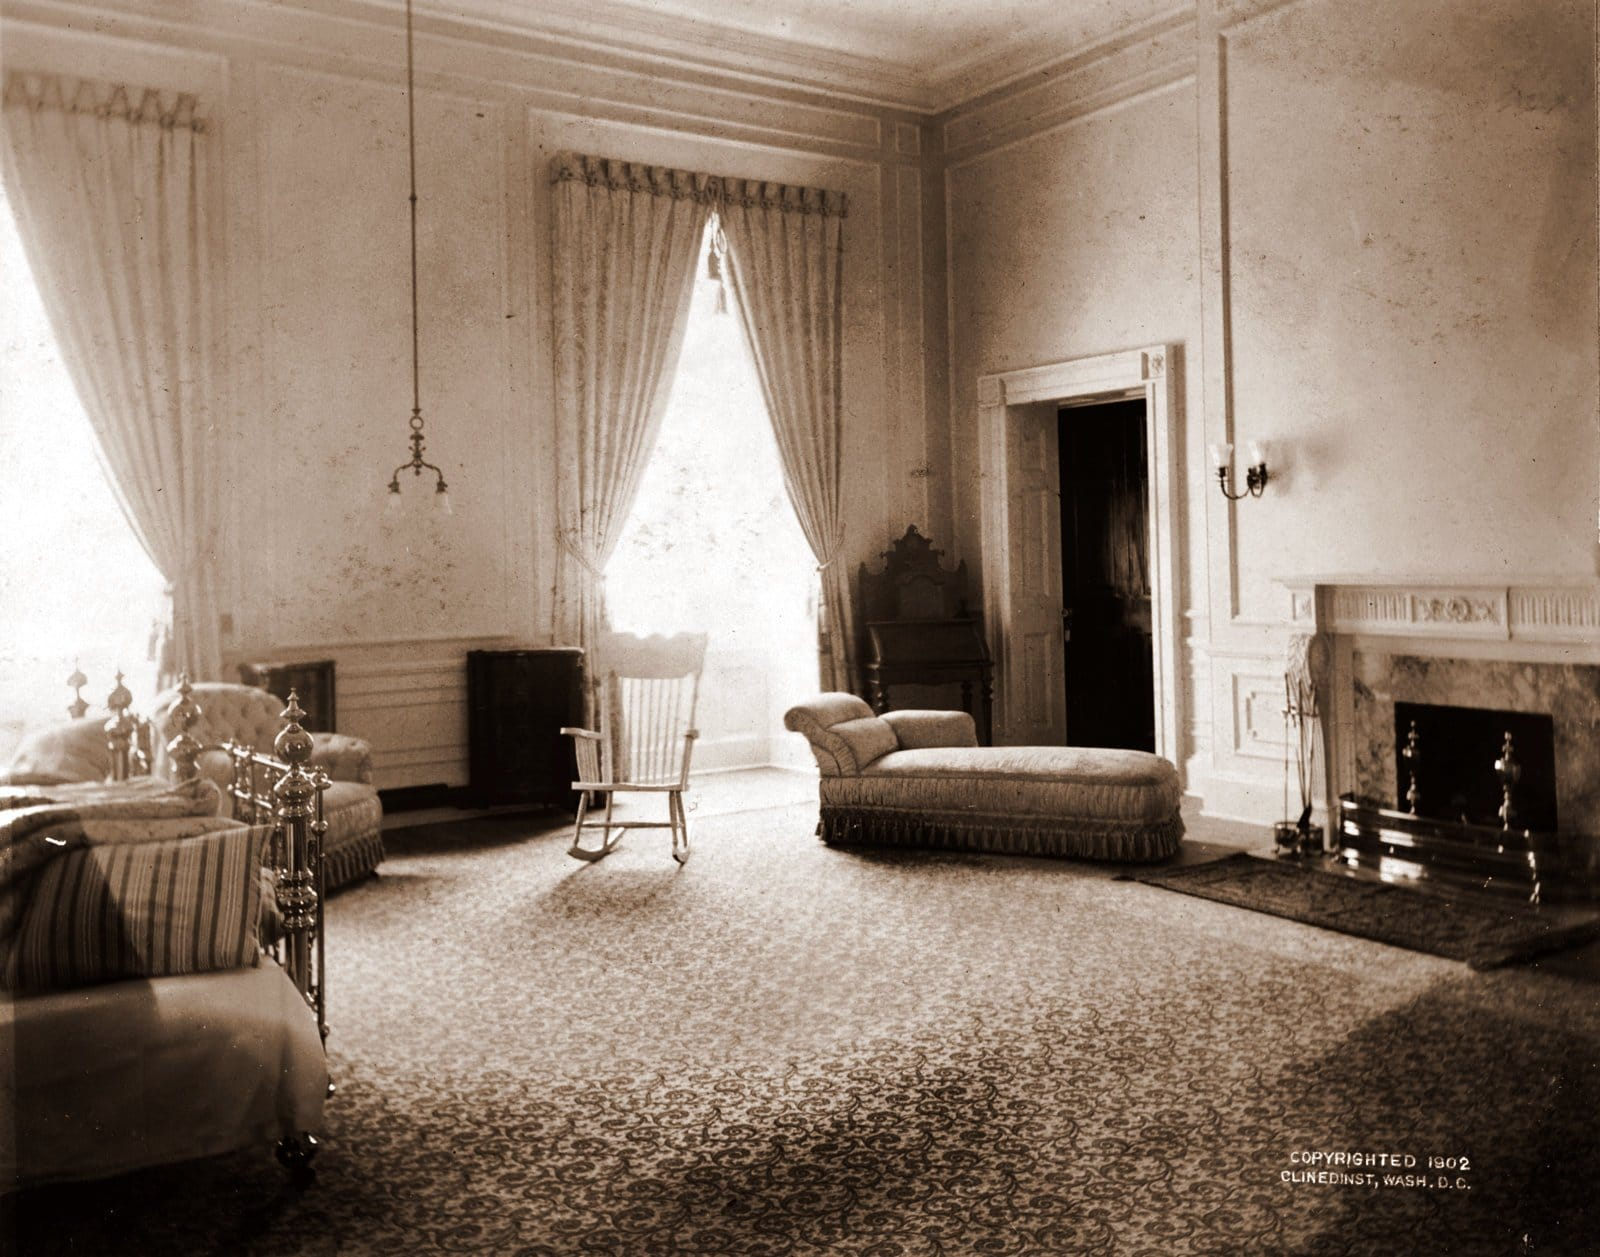 The White House bedroom of Alice Roosevelt Longworth